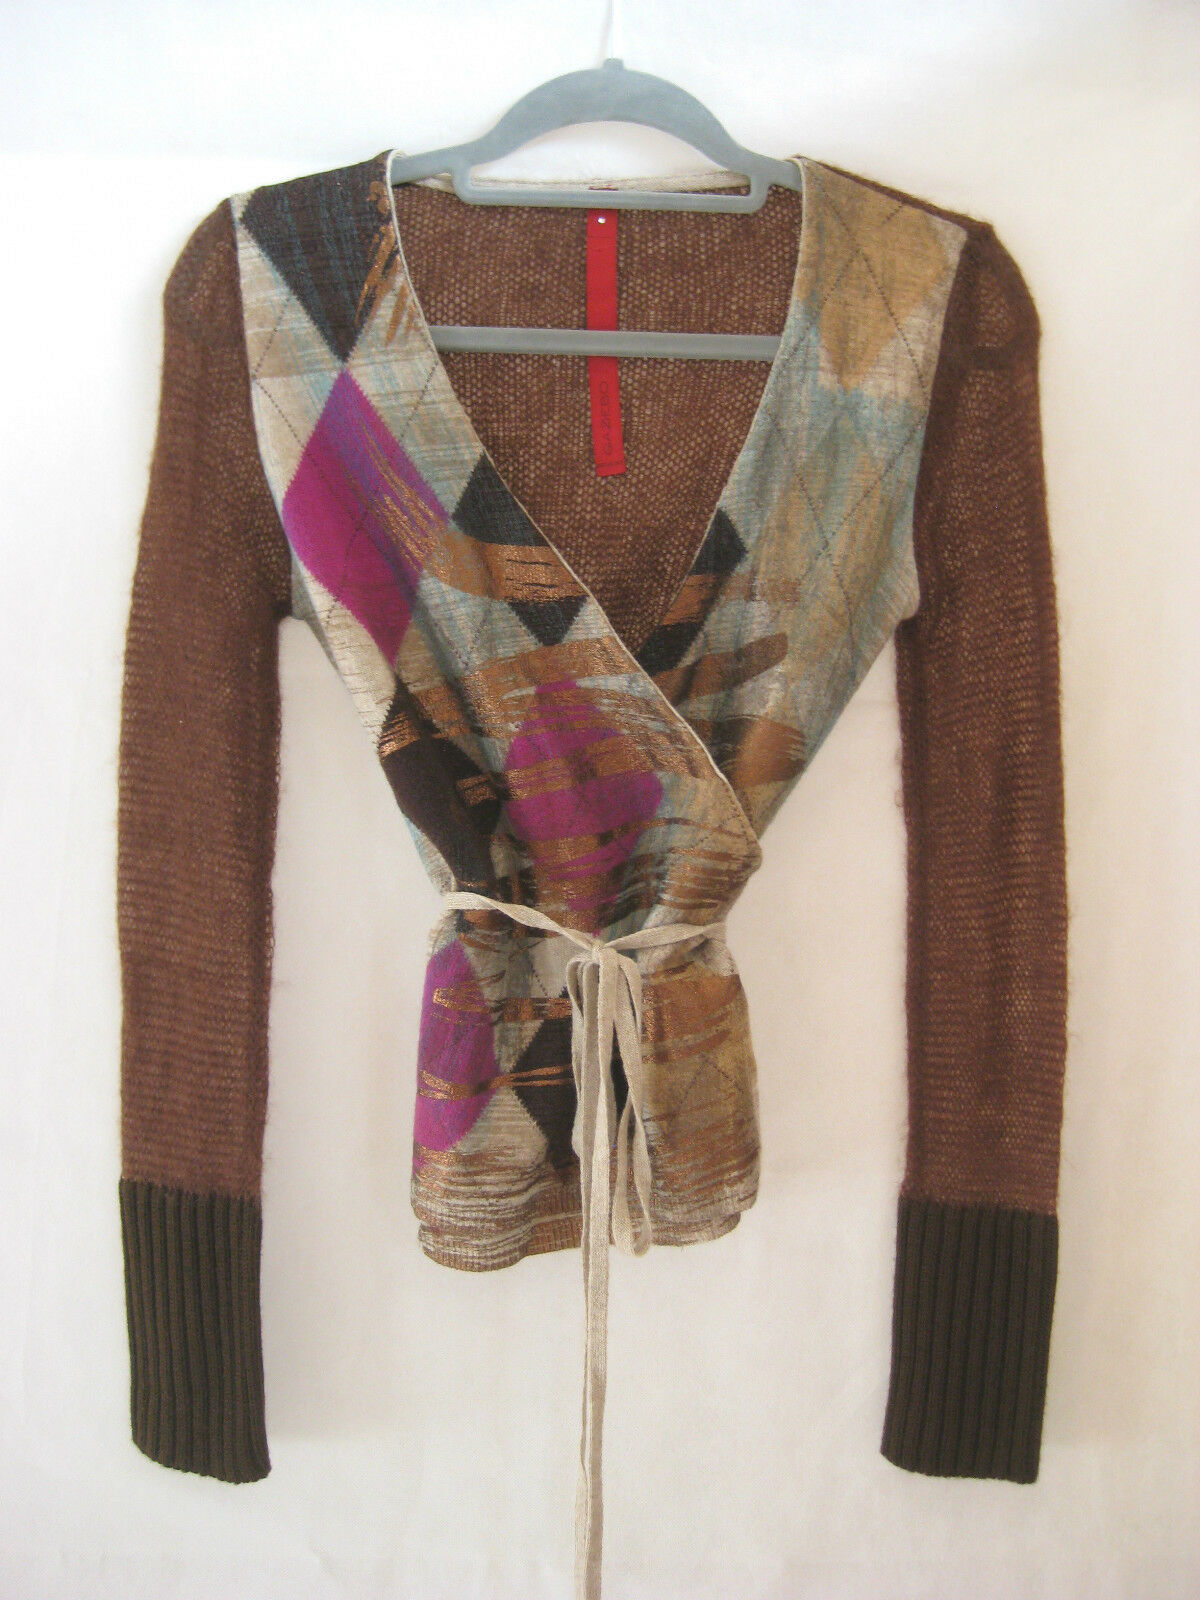 GAZEBO Cinnamon Winter Knit with Harlequin Check Print Wrap Top Taille petit (8)